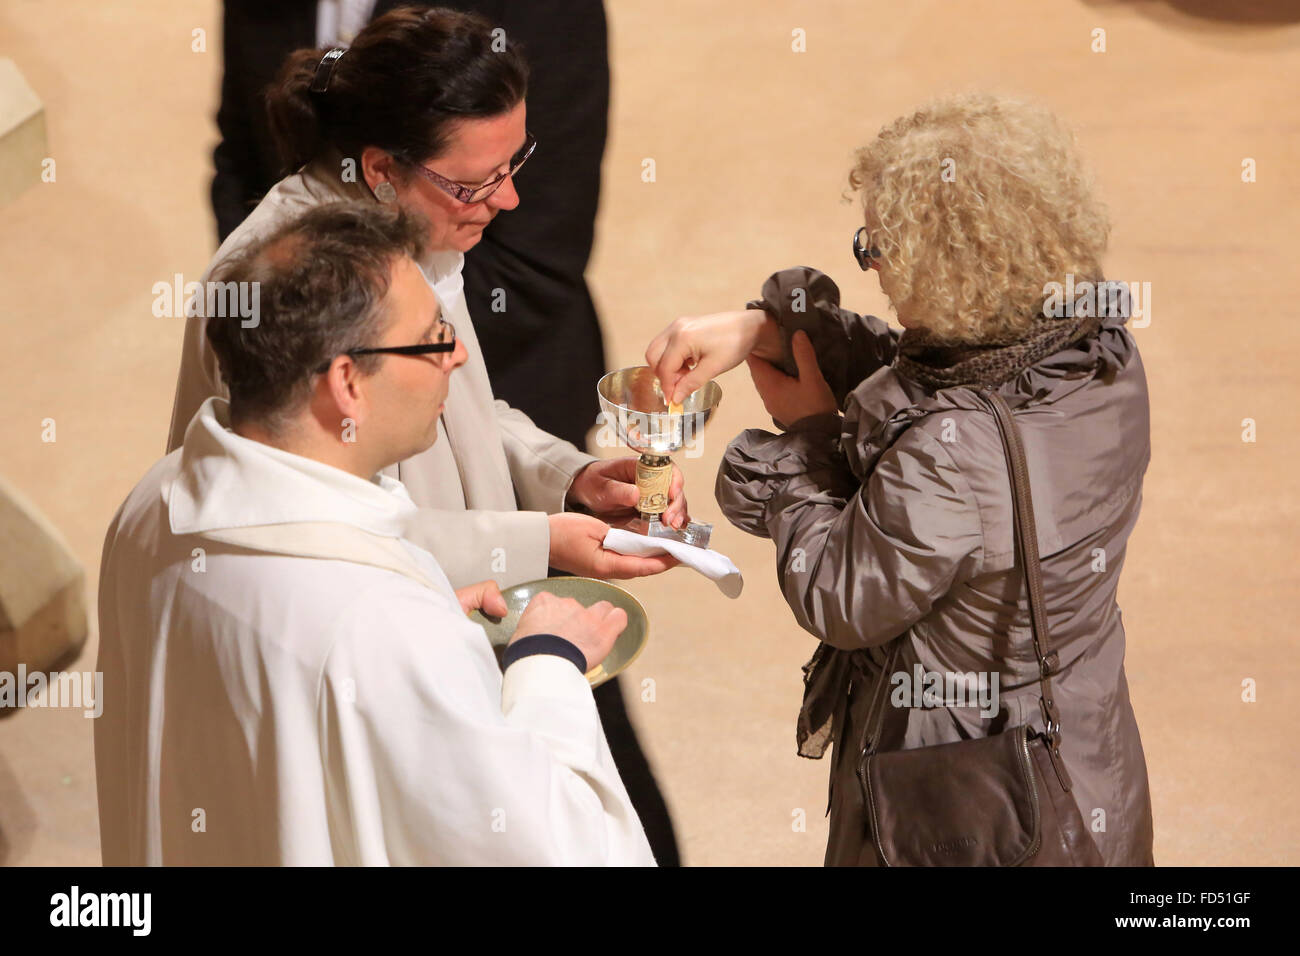 Holy communion. - Stock Image